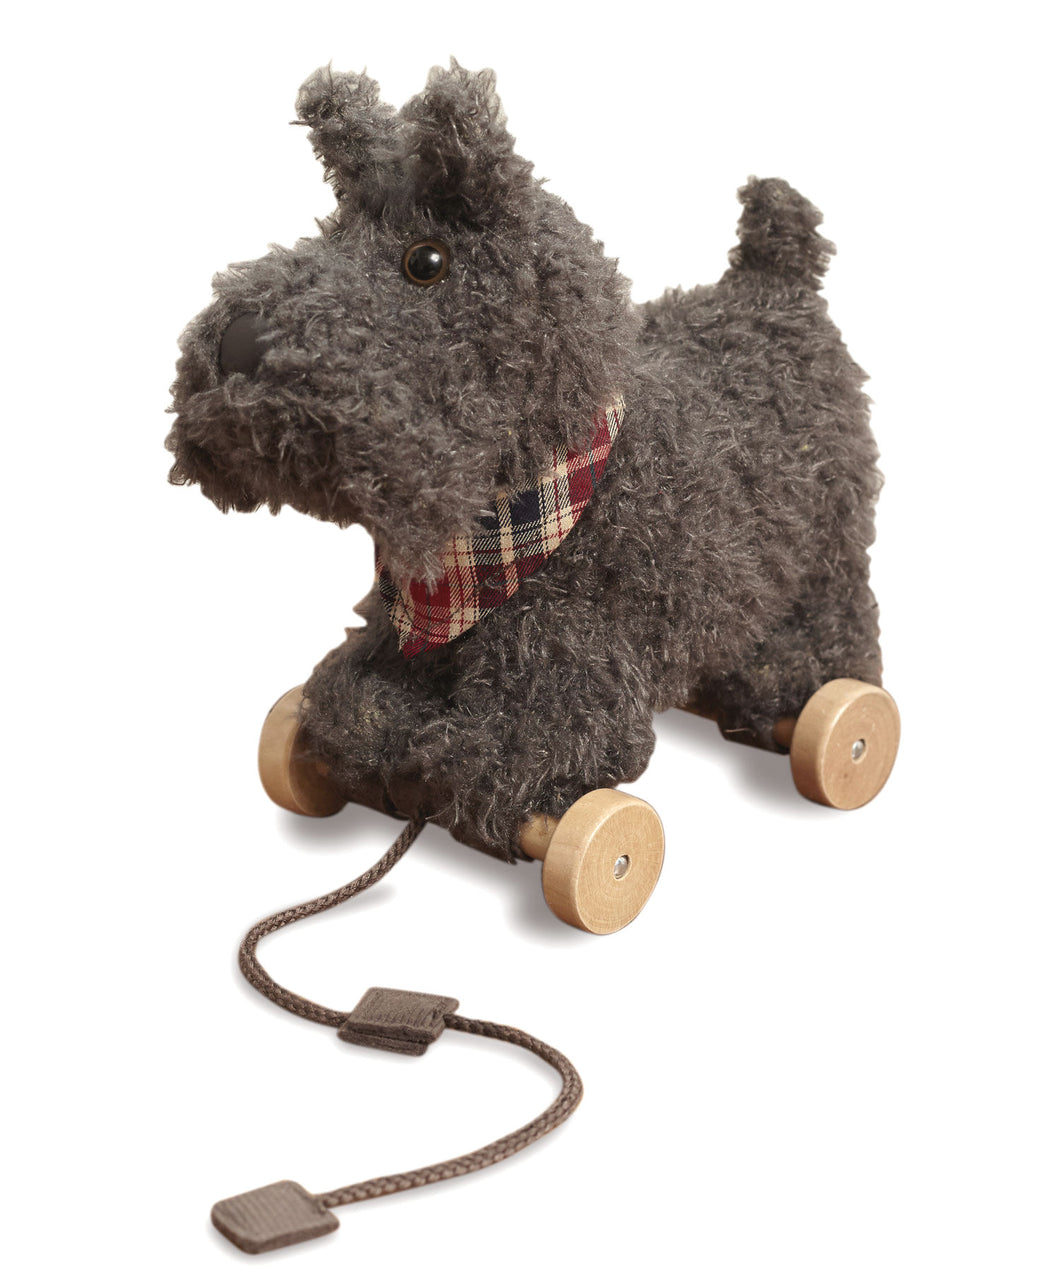 Little Bird Told Me Pull-Along Toddler Toy - Scottie Dog